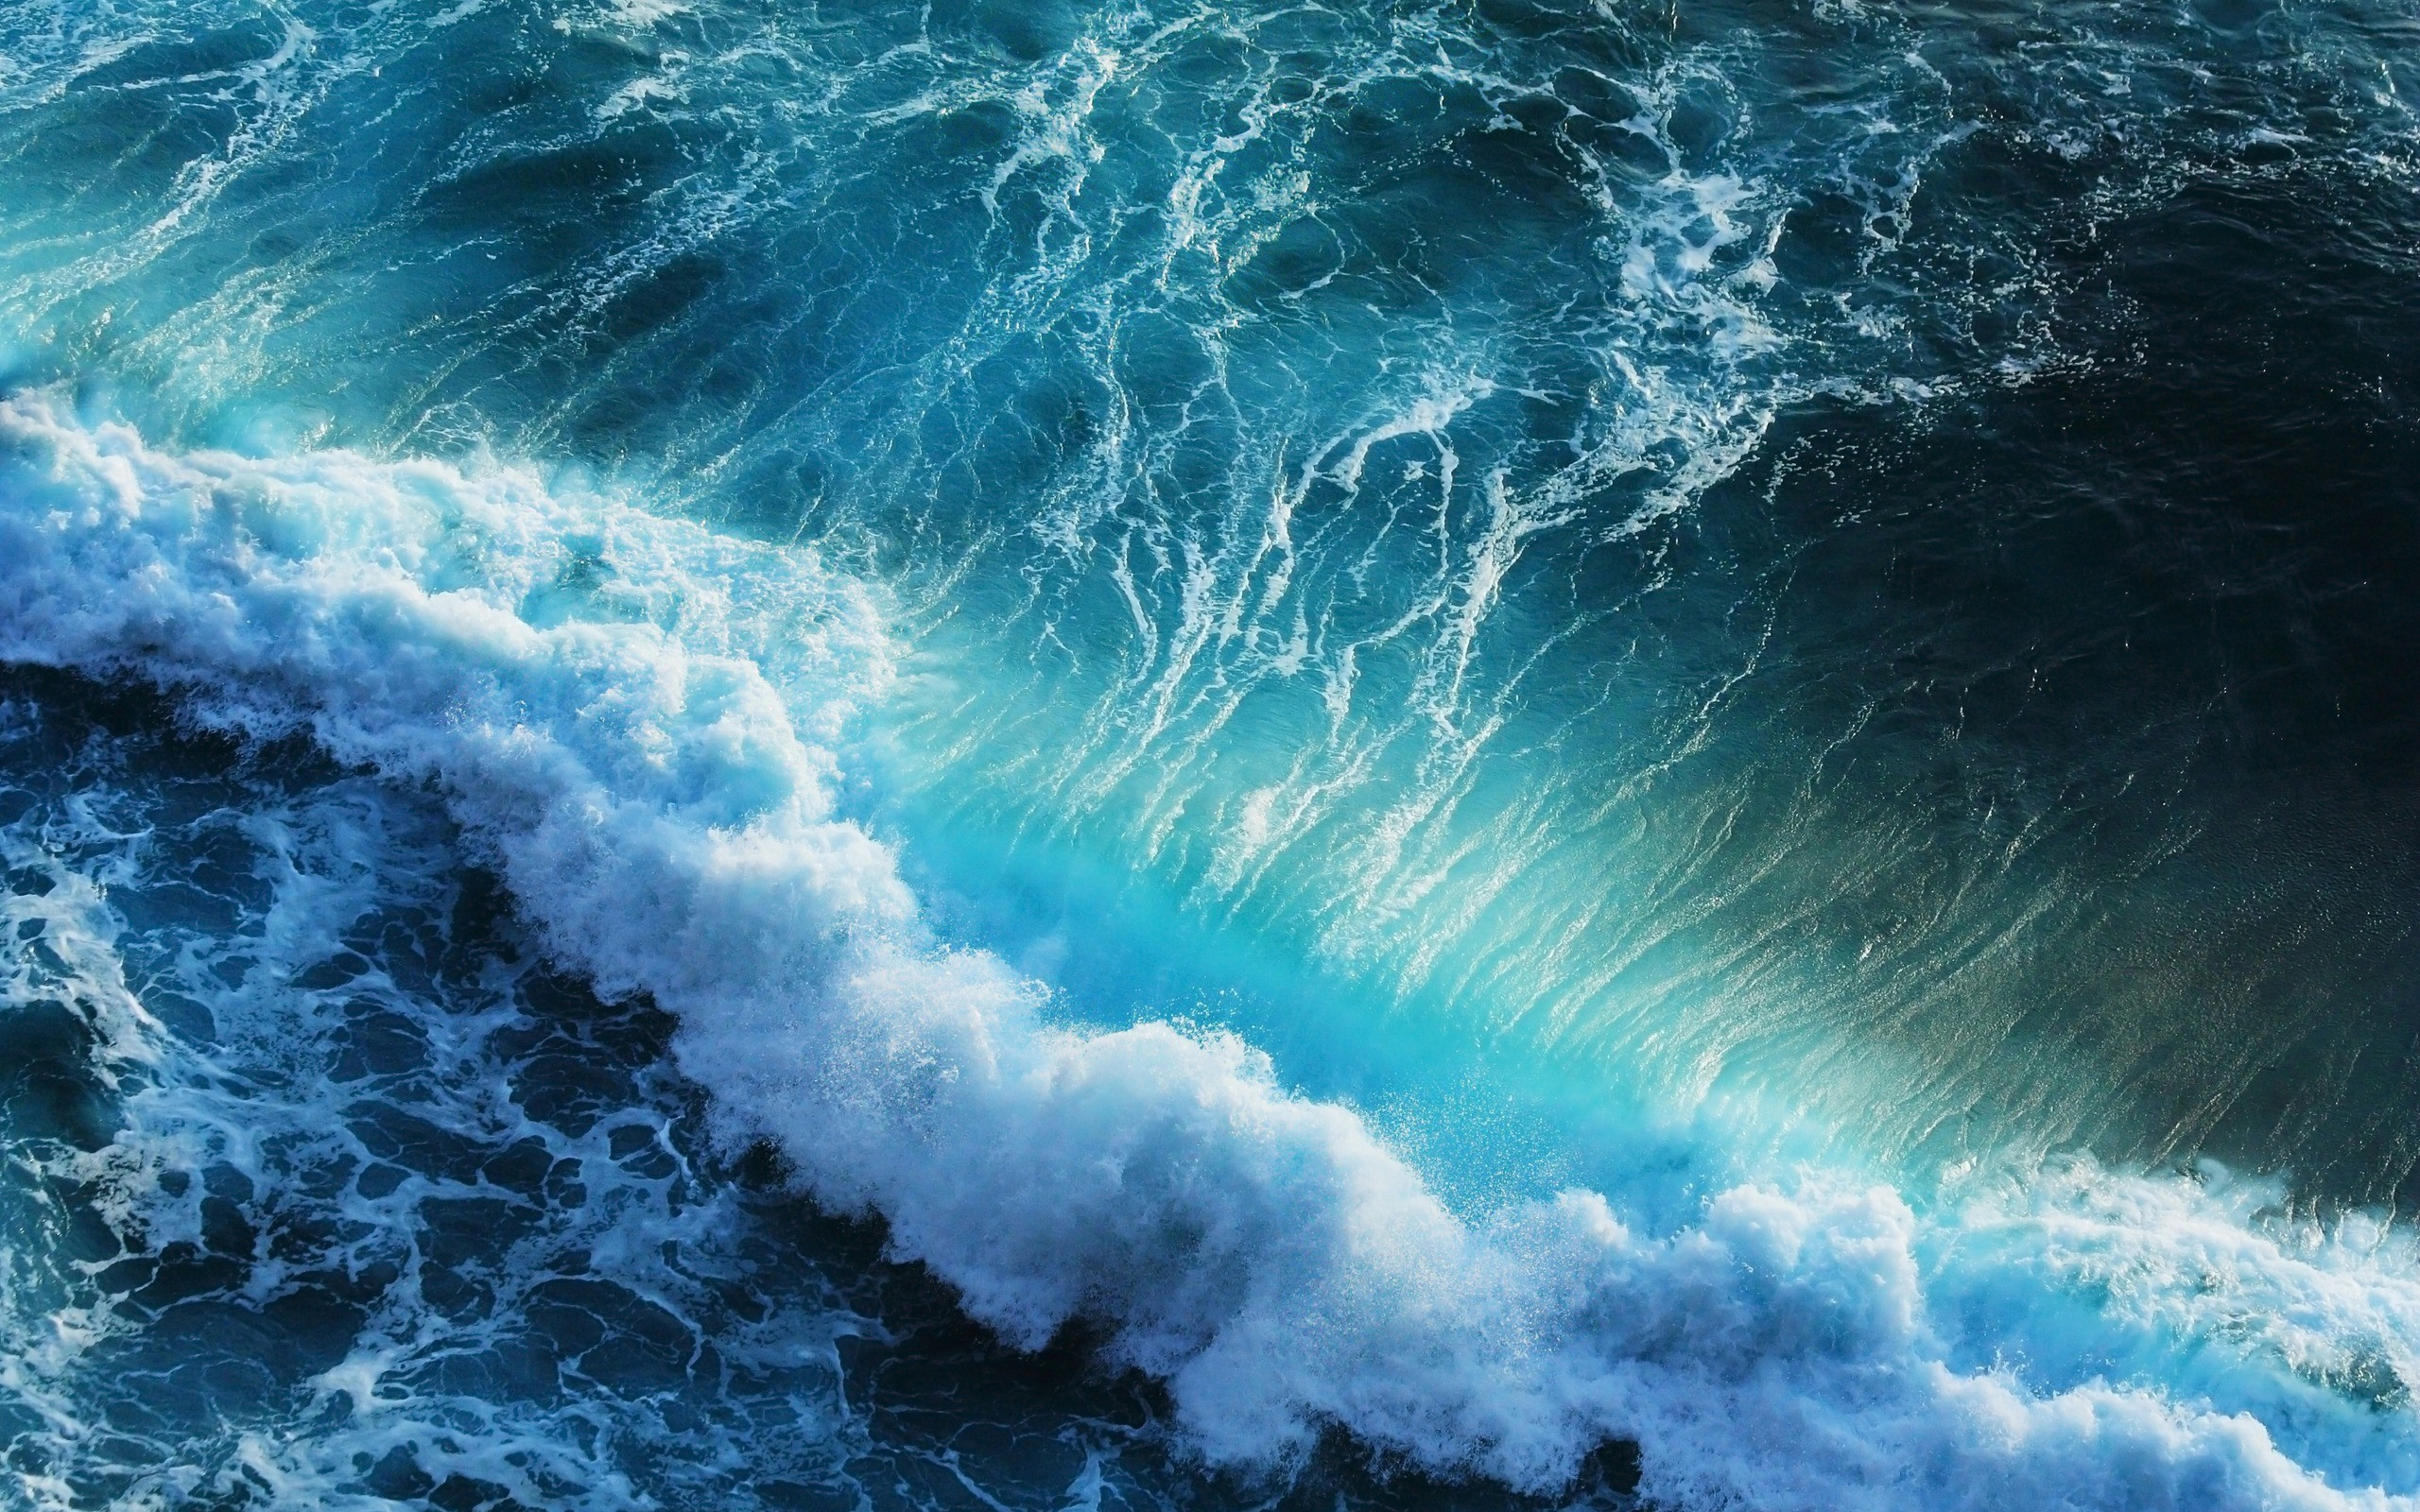 2560x1600 Blue Ocean Waves desktop PC and Mac wallpaper